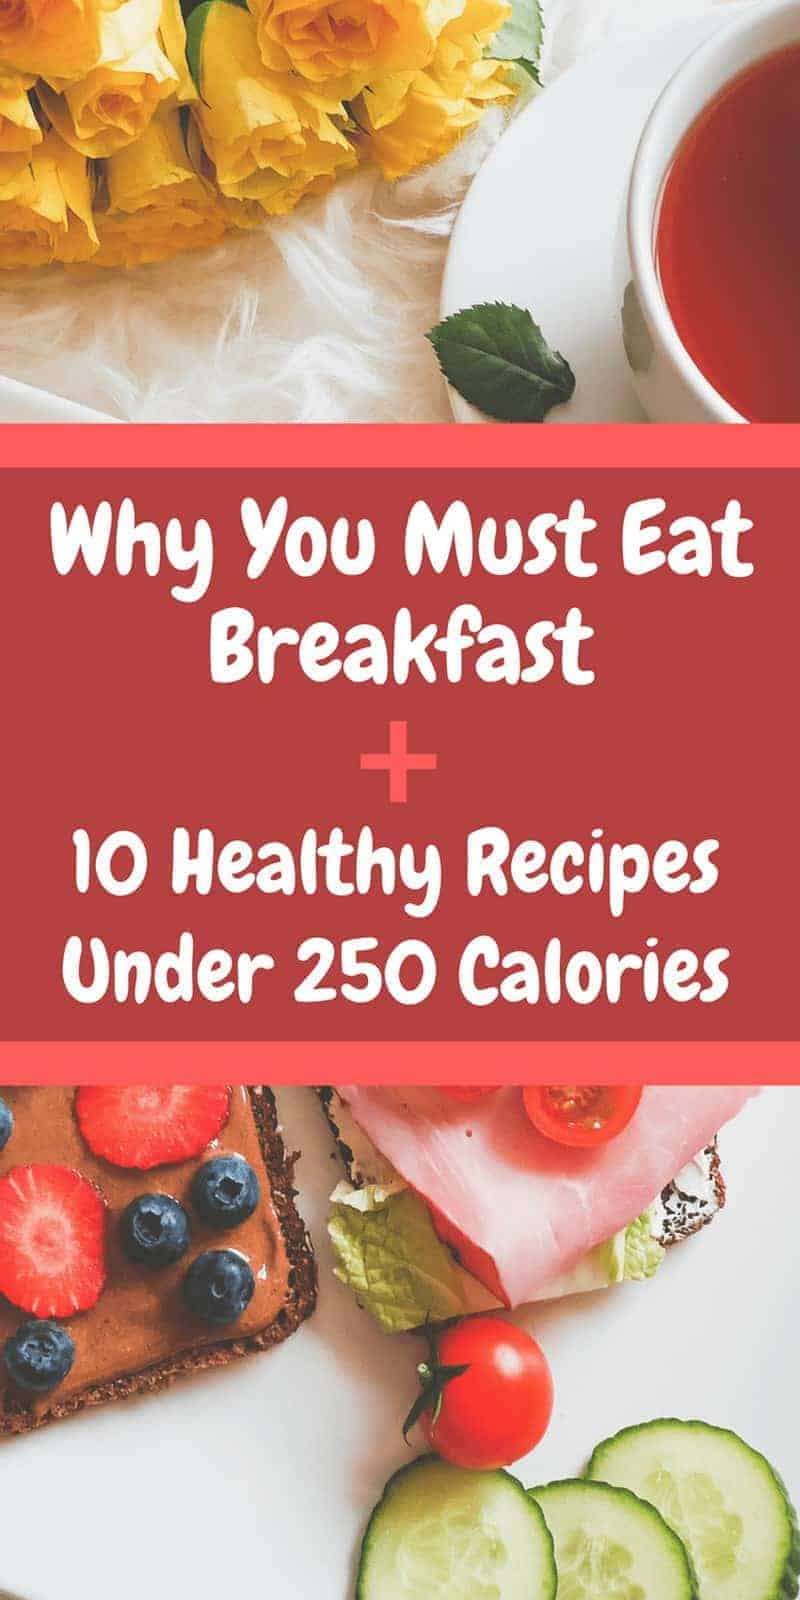 10 healthy breakfast recipes under 250 calories your lifestyle options